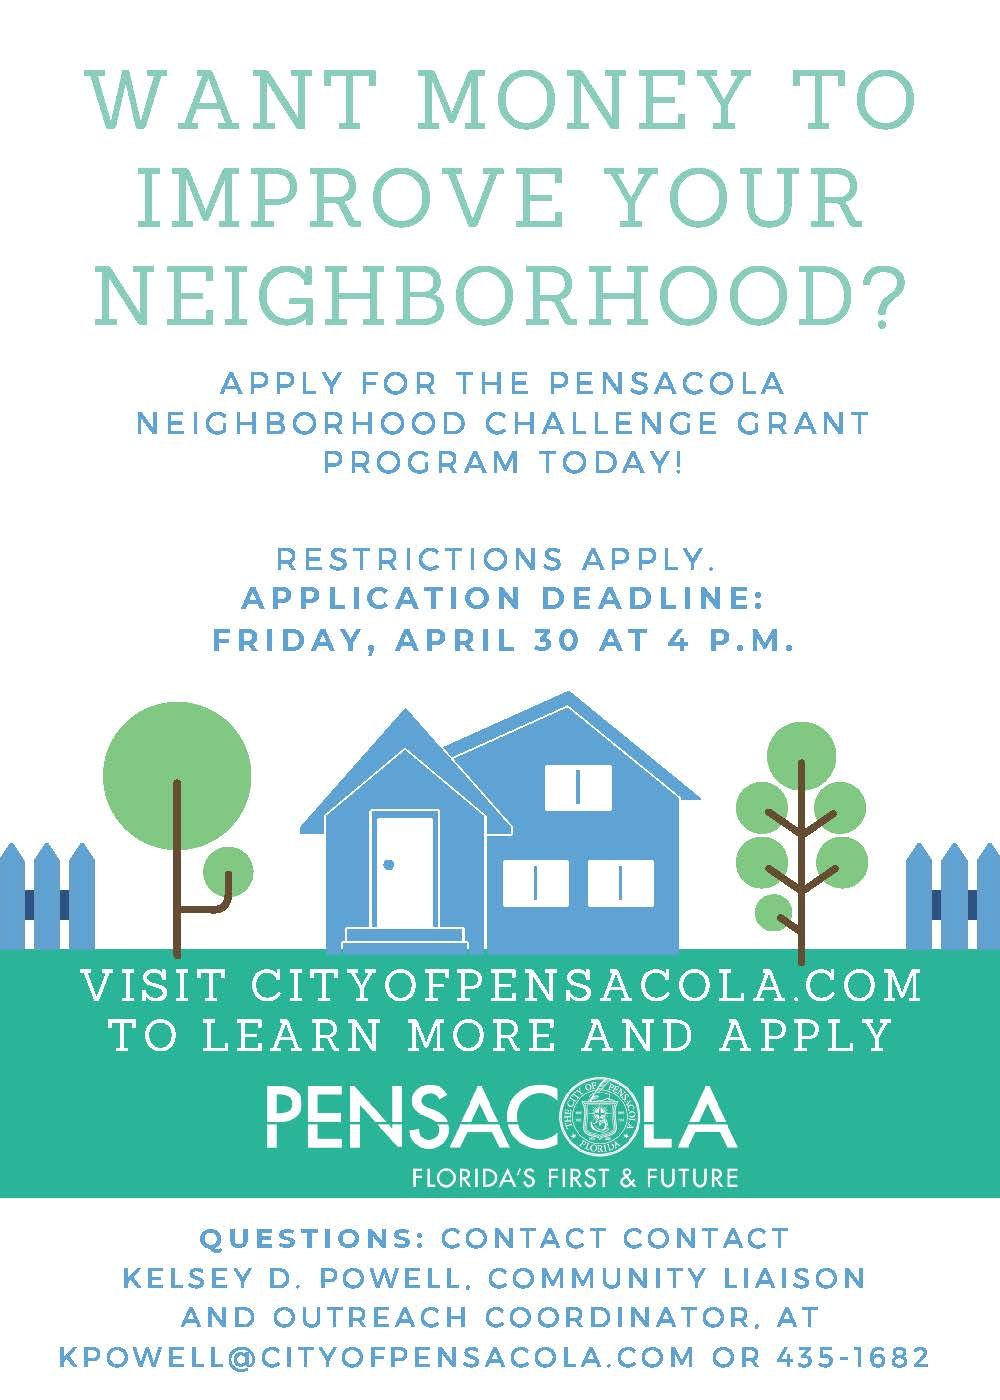 Neighborhood challenge grant program